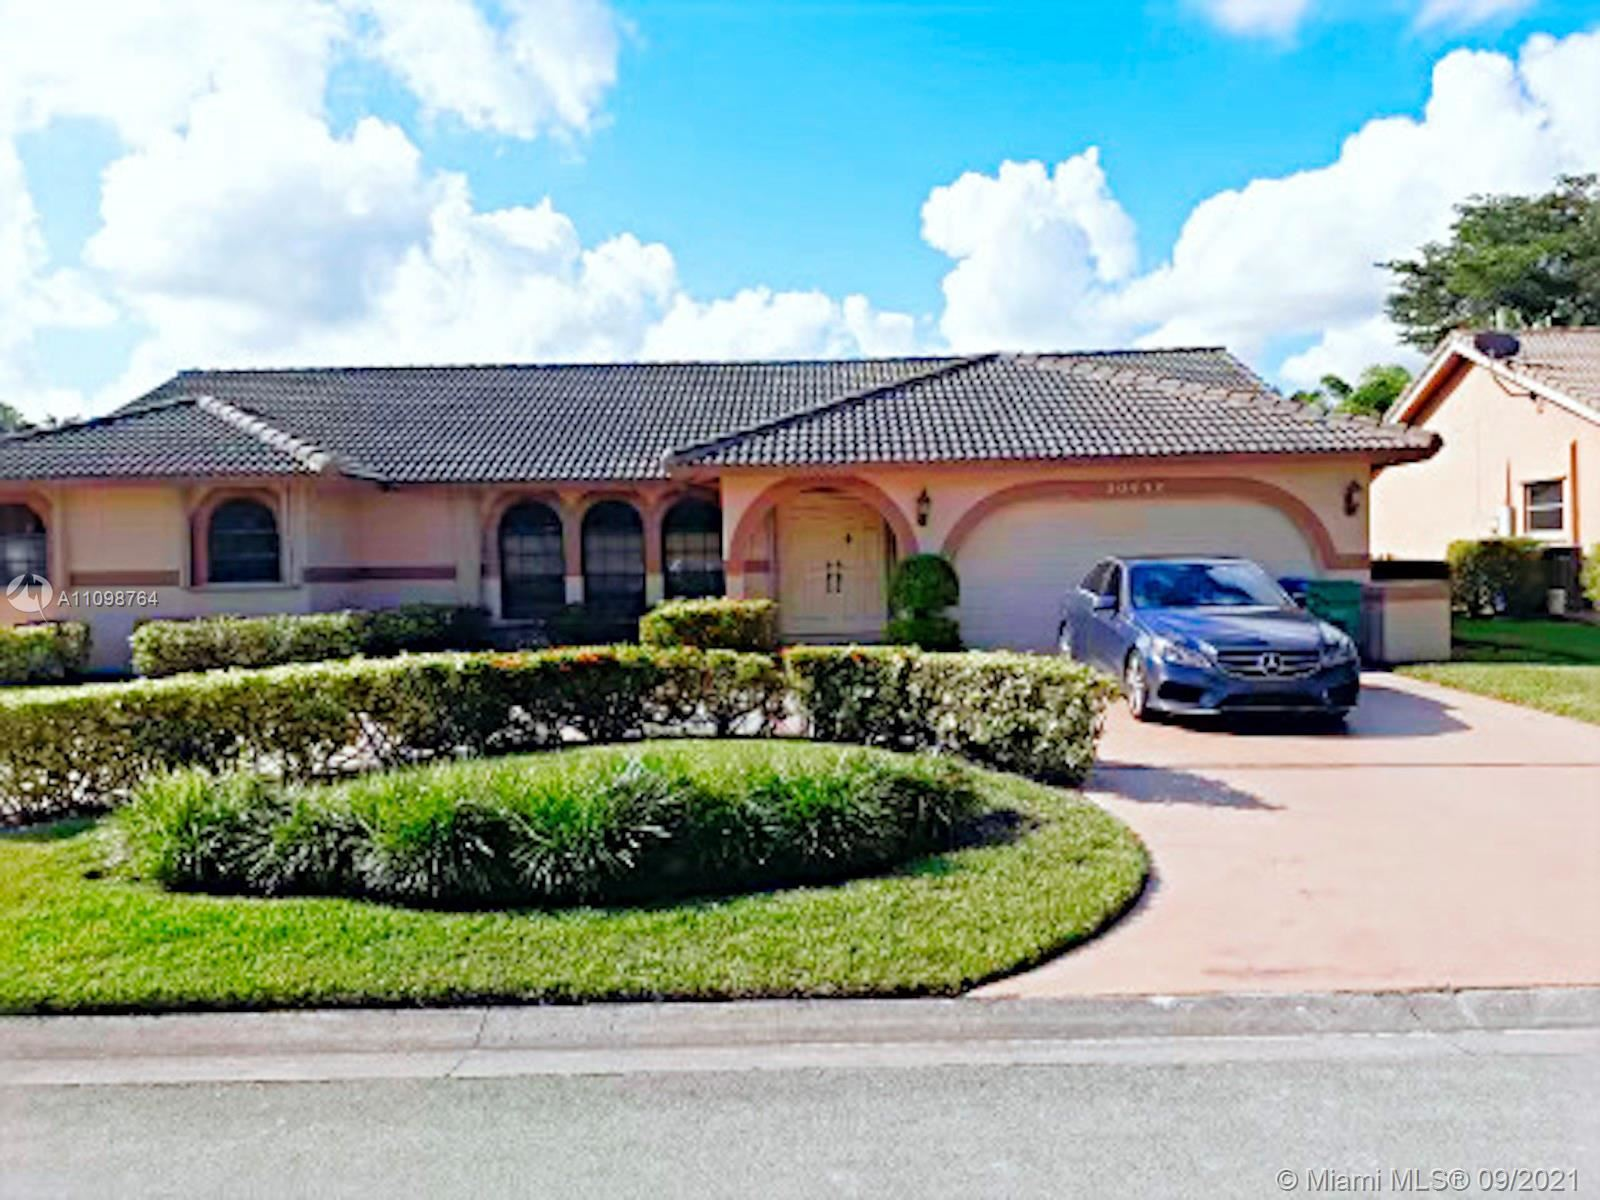 10932 NW 13th Ct, Coral Springs, FL 33071 - #: A11098764